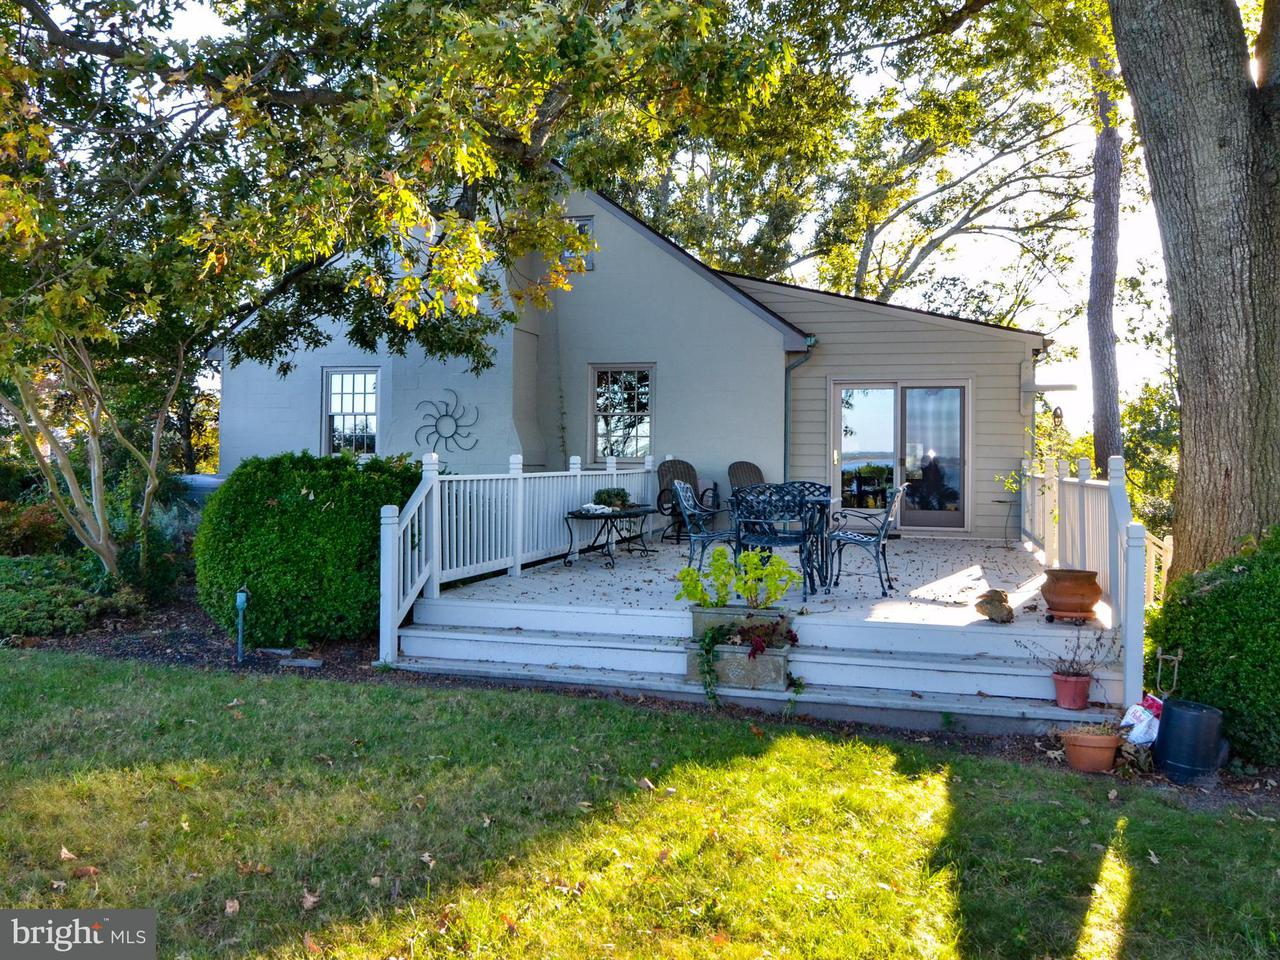 Additional photo for property listing at 441 Benton Point 441 Benton Point Tappahannock, Βιρτζινια 22560 Ηνωμενεσ Πολιτειεσ